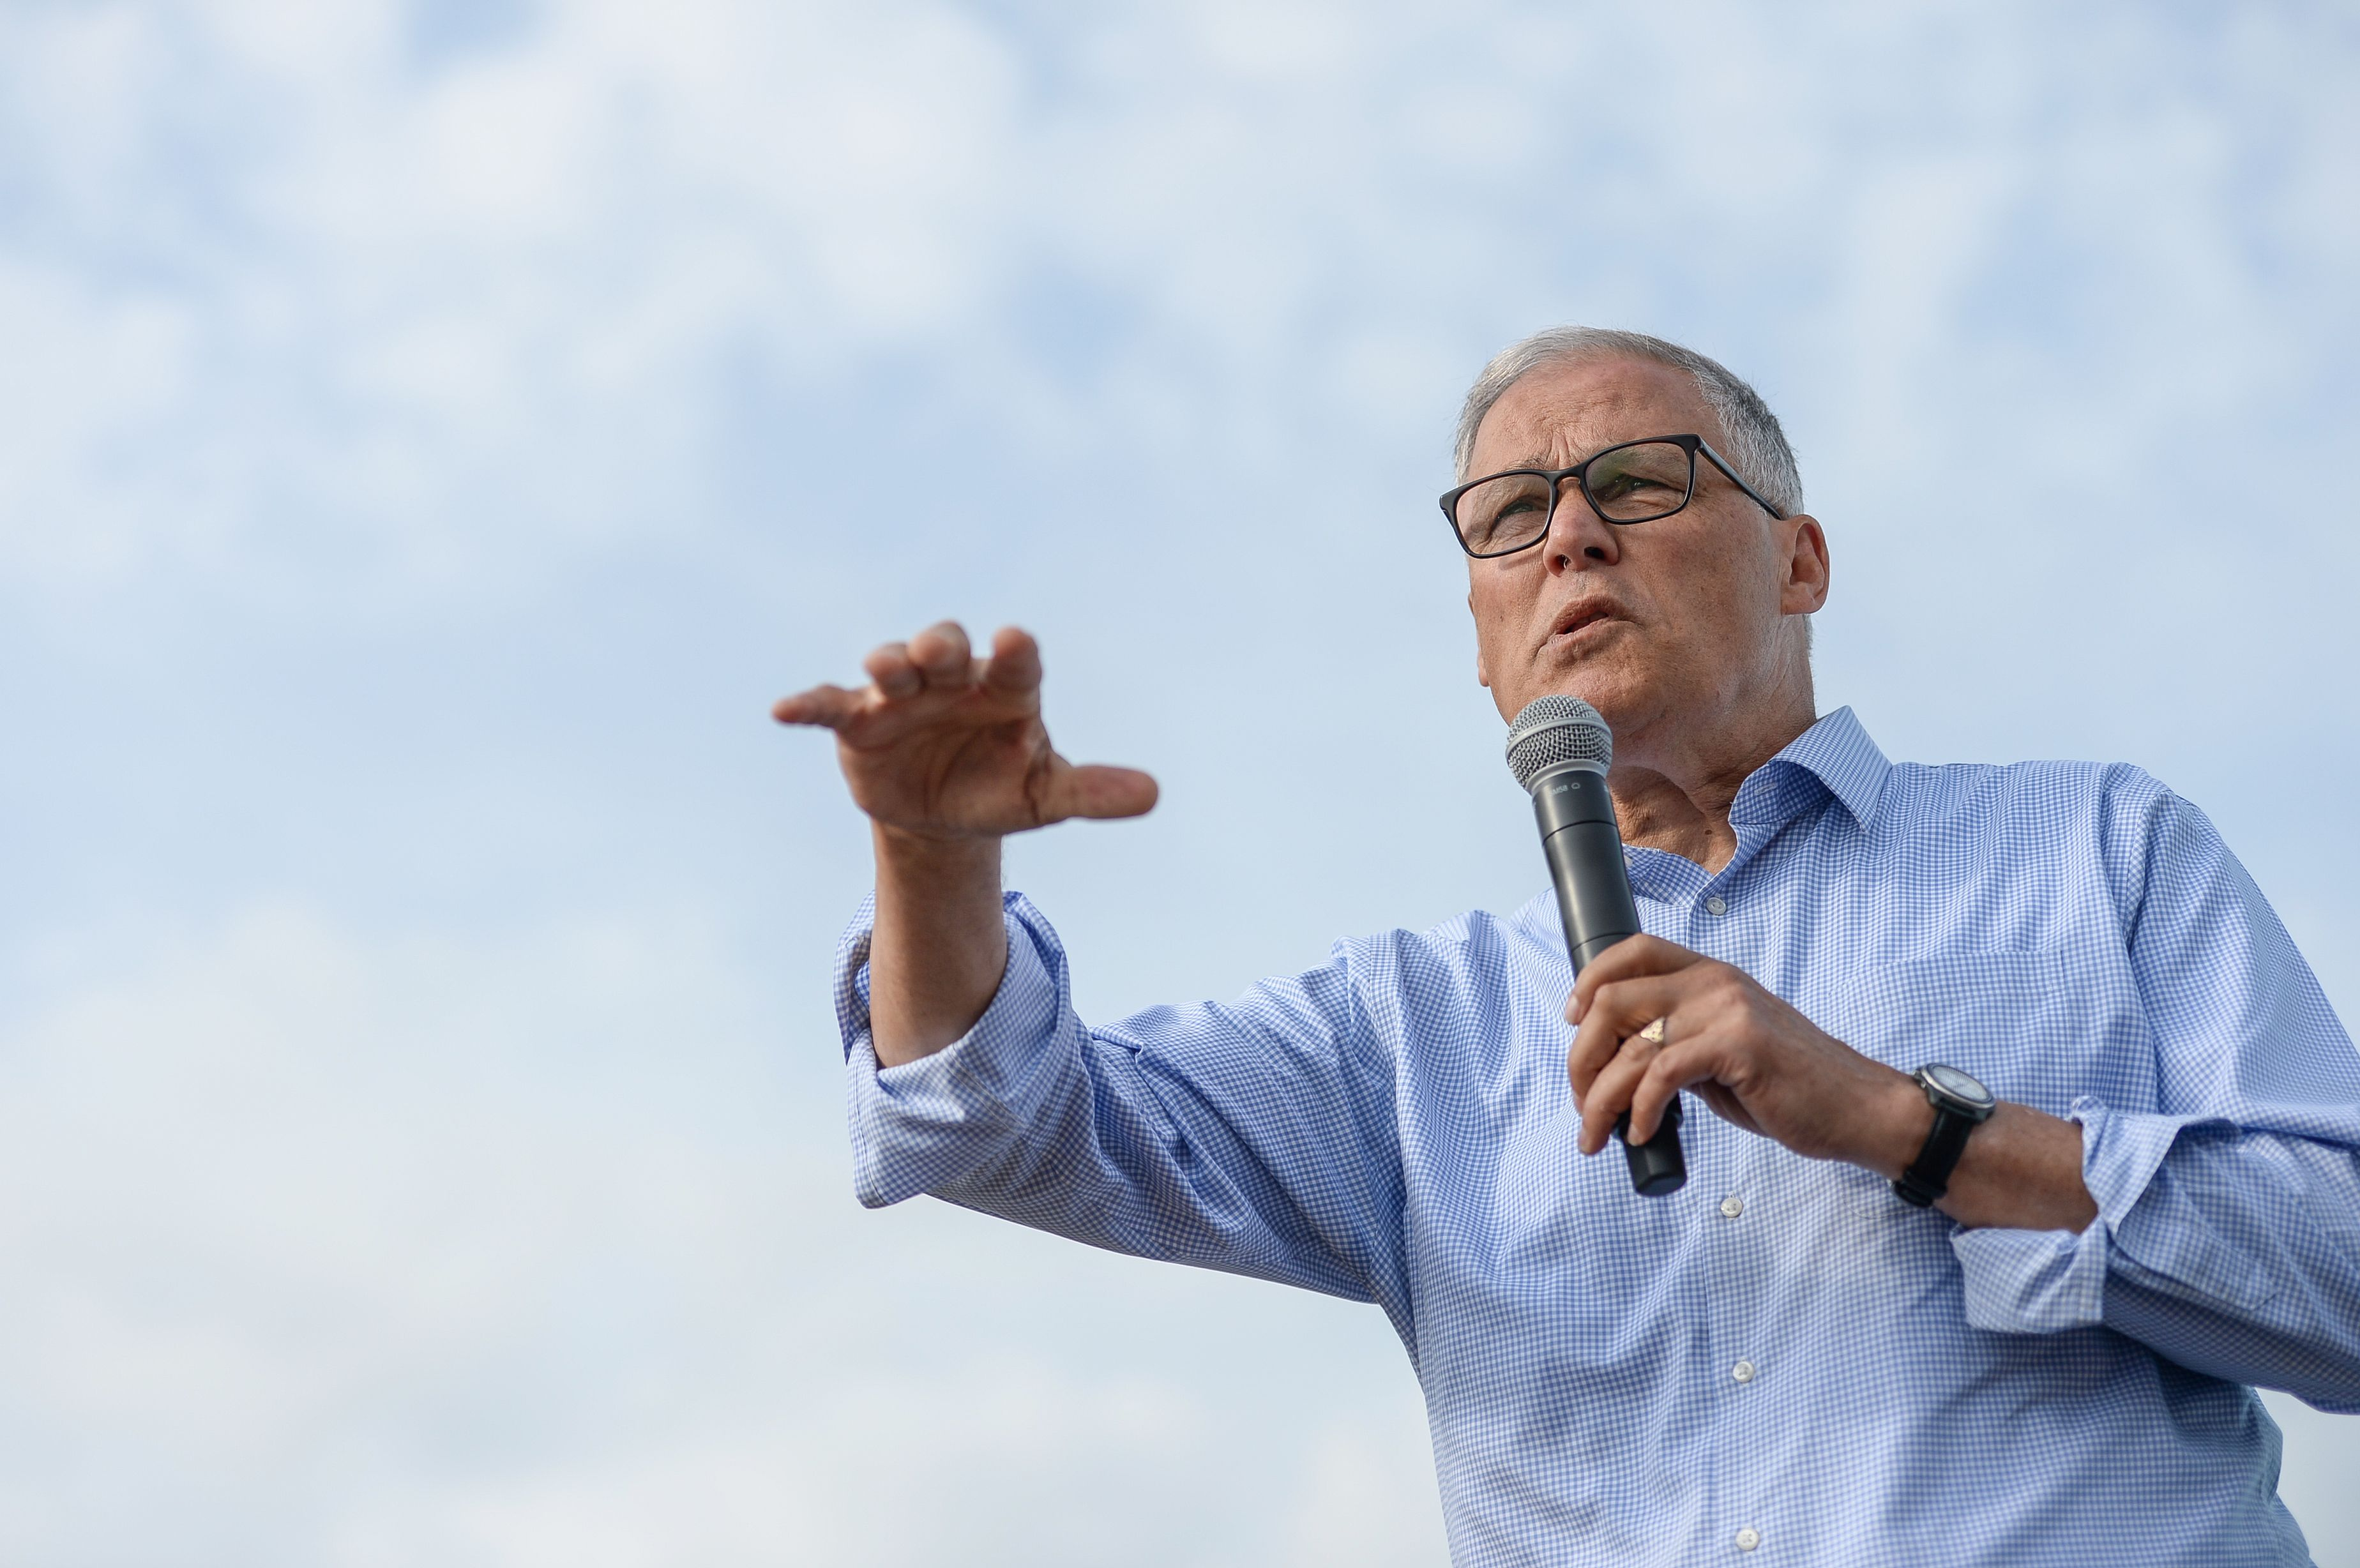 Jay Inslee Made the Case That the Climate Crisis Is Lurking Beneath Every Other Issue